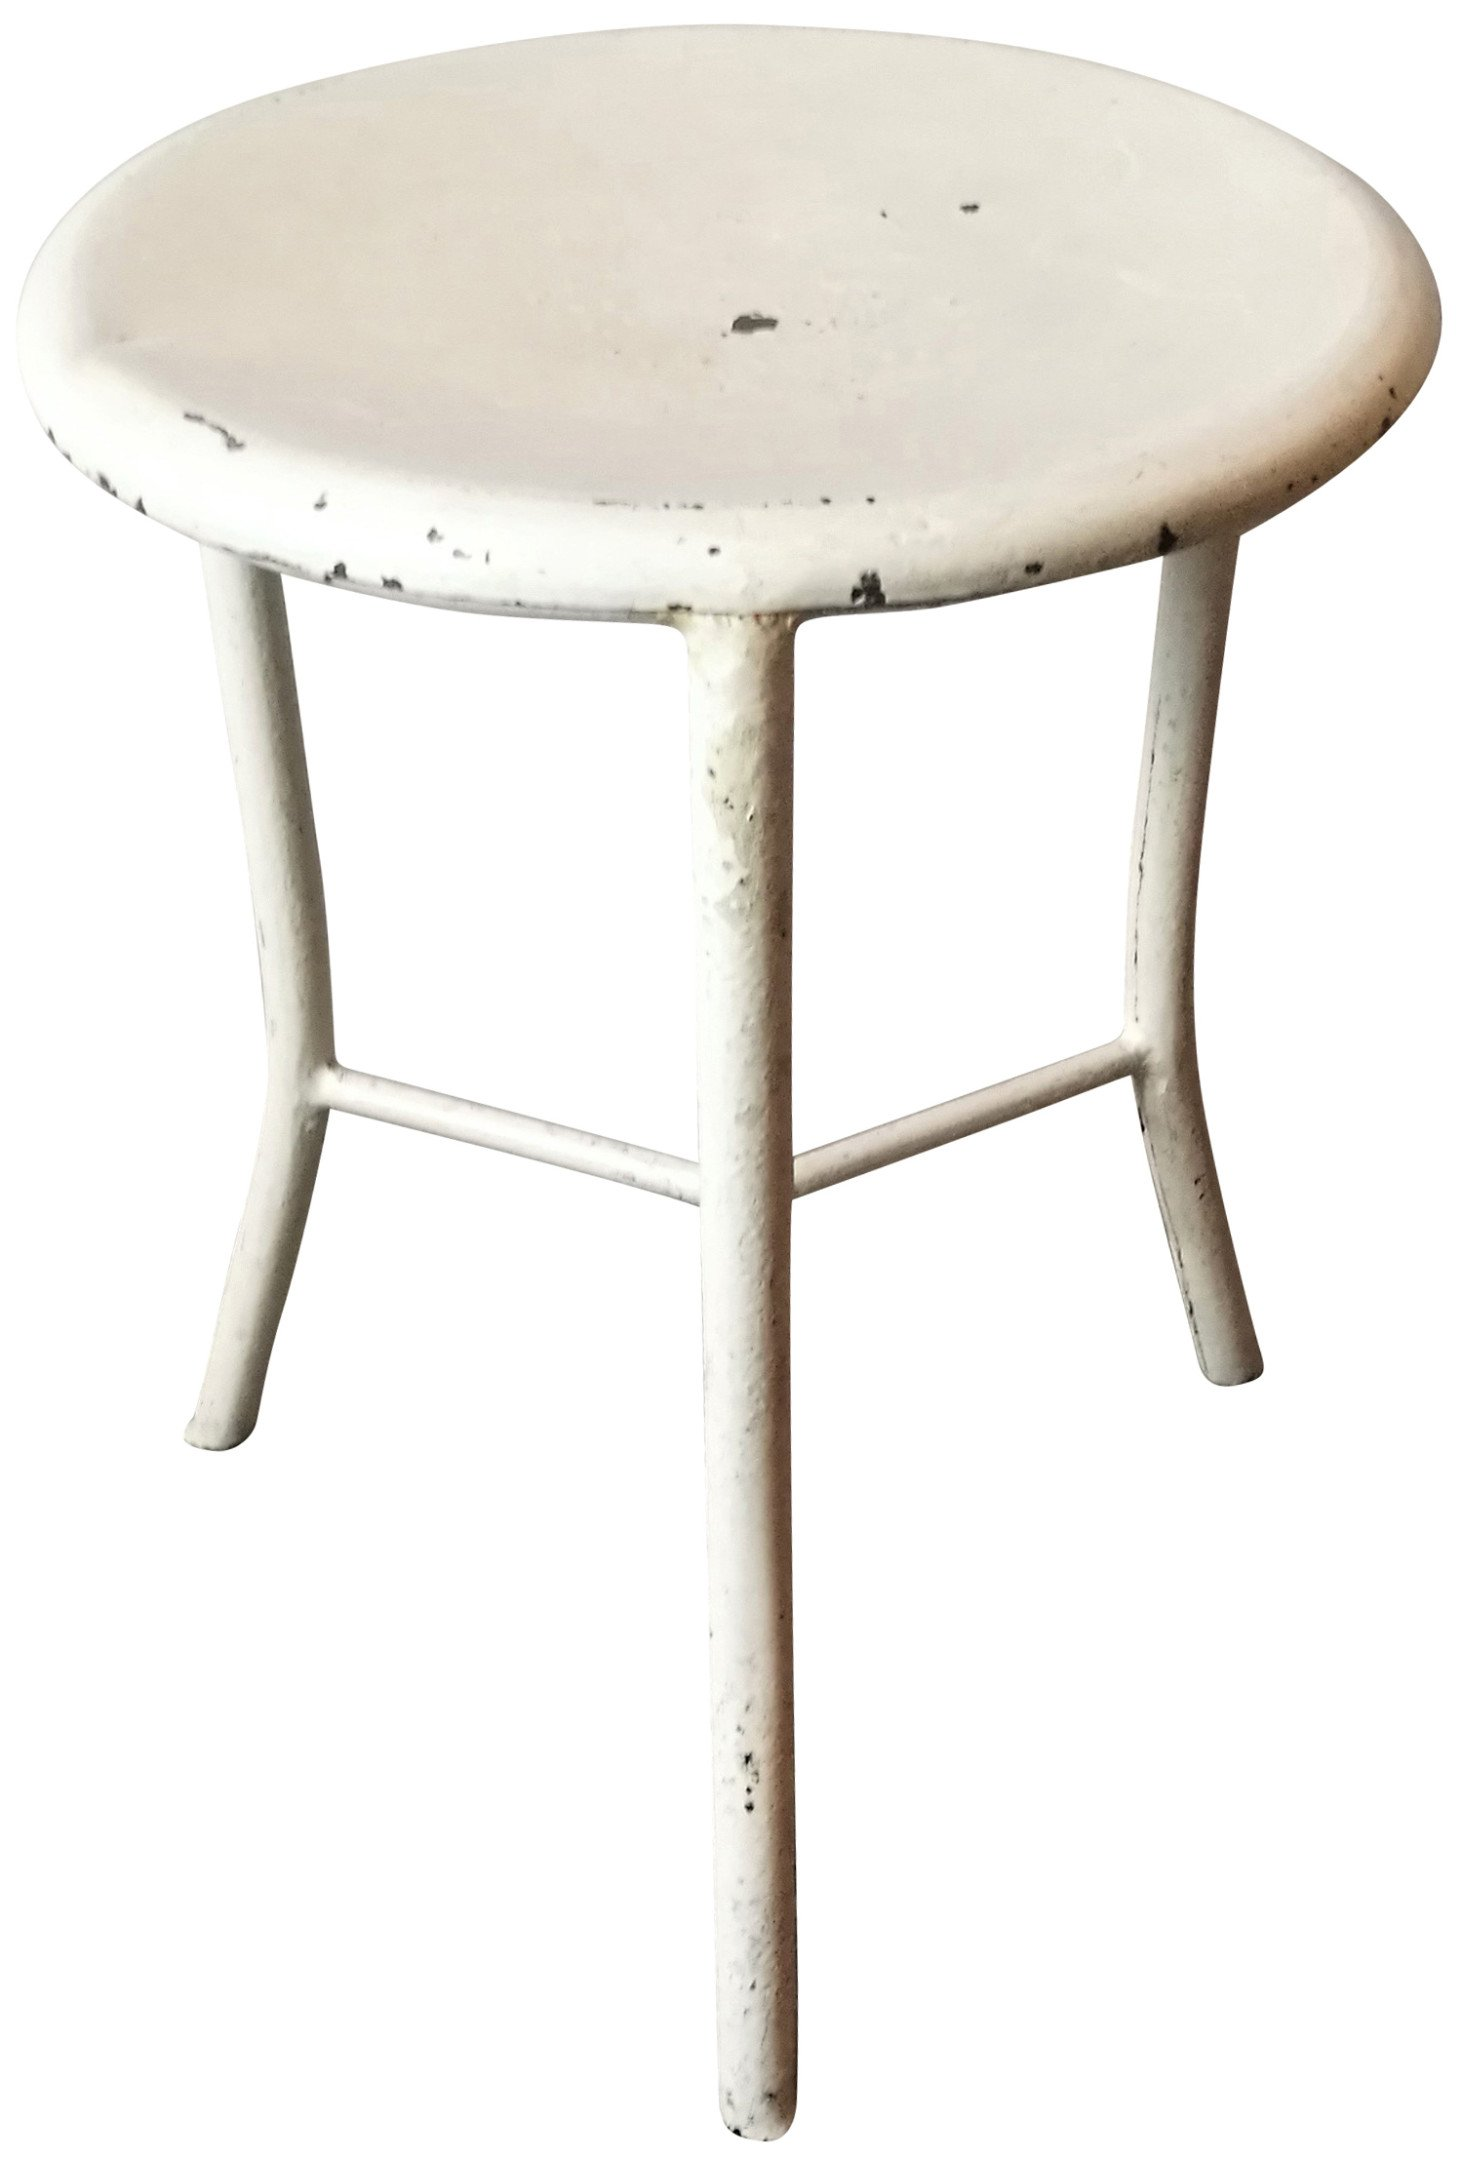 Medical Stool, 1960s